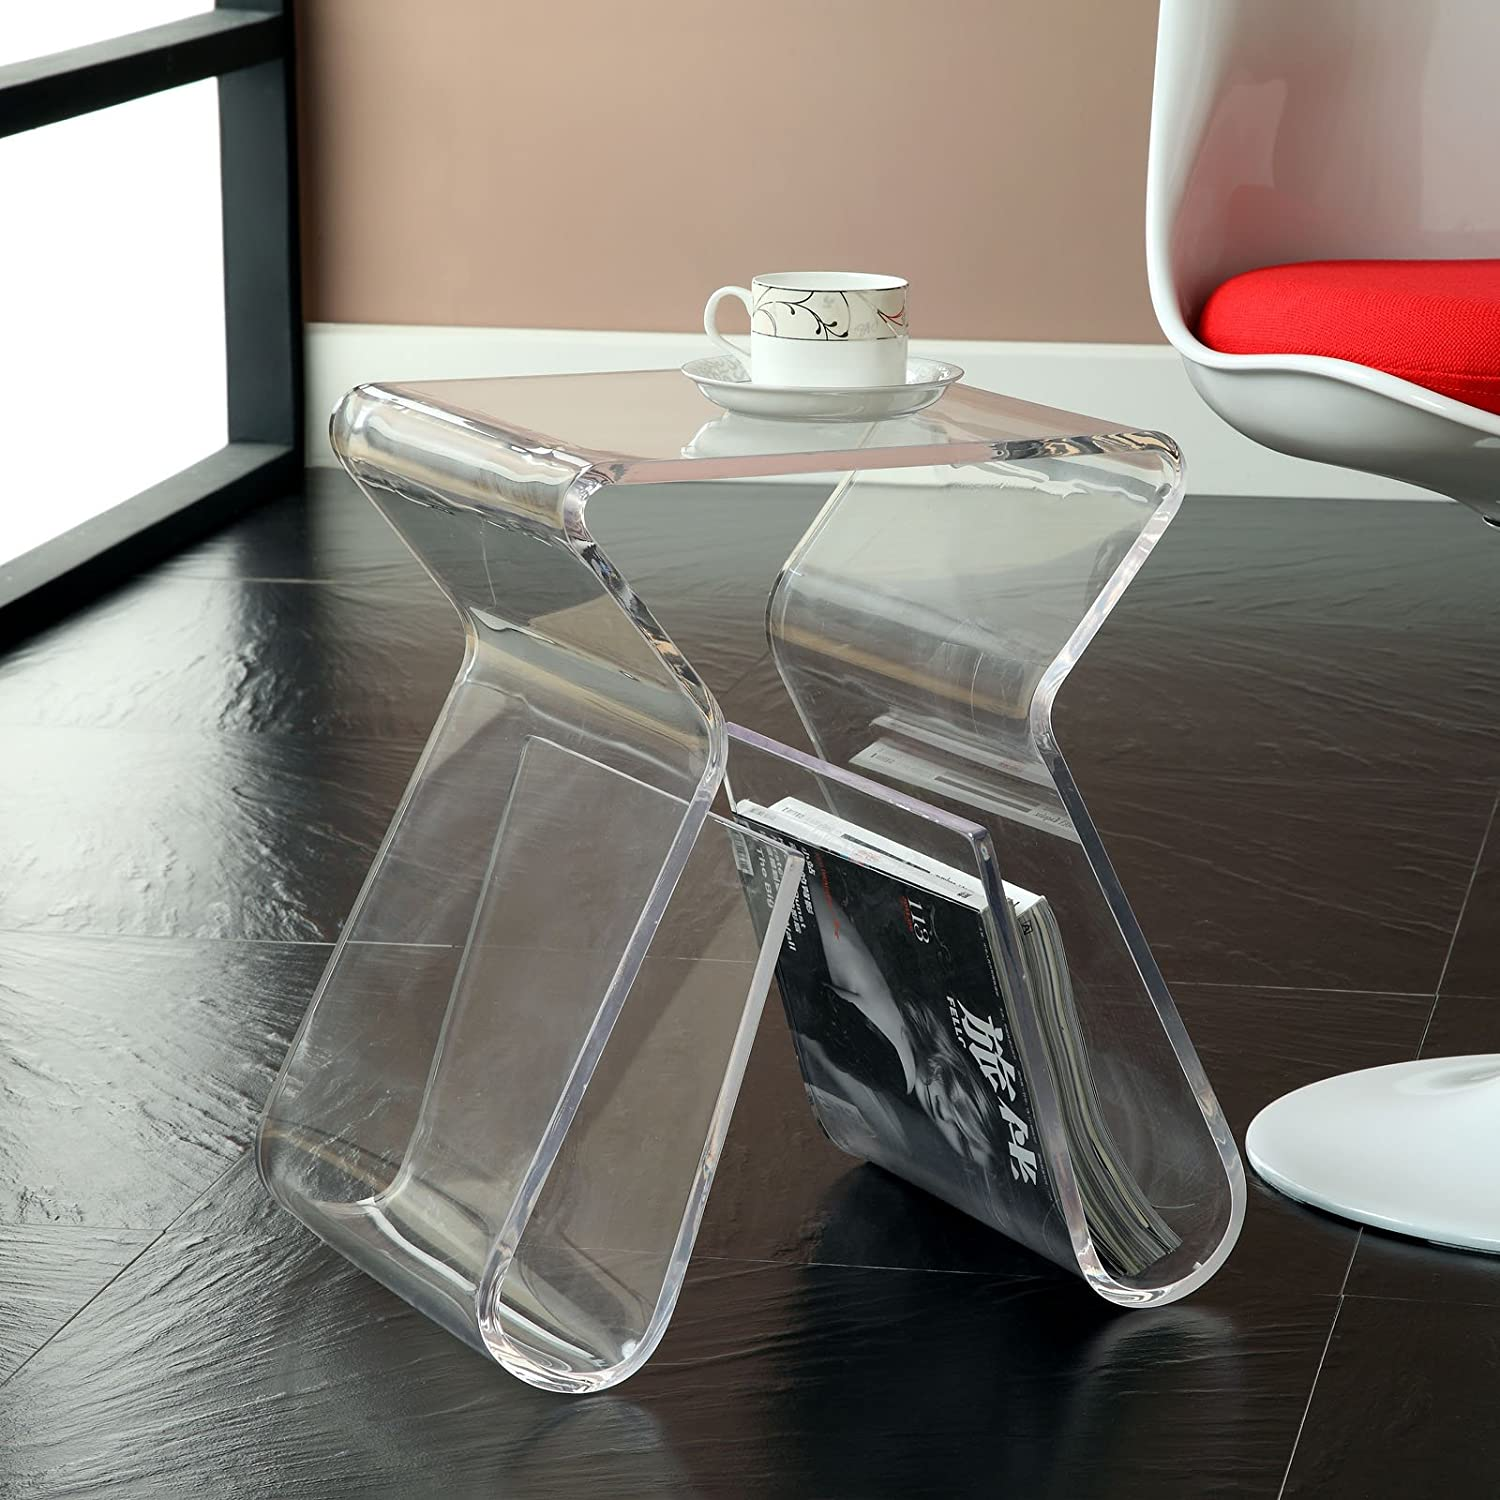 amazoncom modway acrylic end table with magazine rack in clear  - amazoncom modway acrylic end table with magazine rack in clear kitchen dining